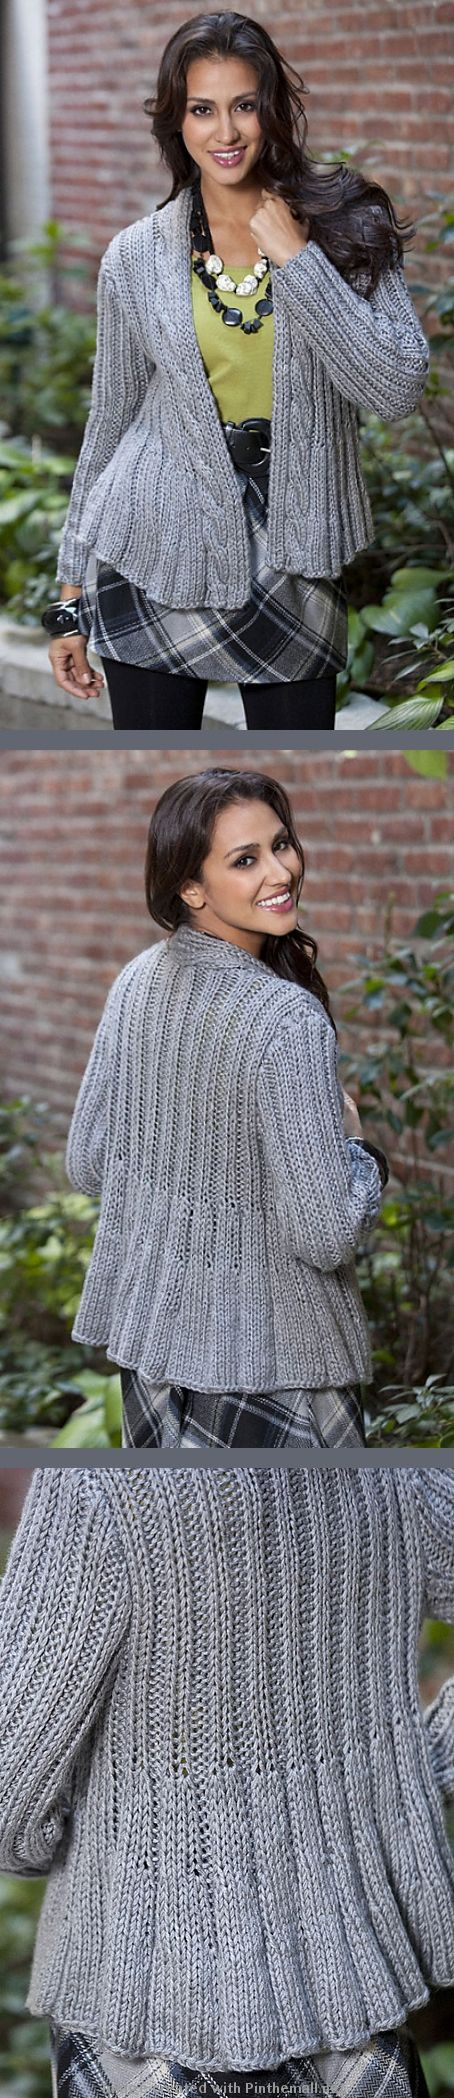 424 best Knit Shawls/Sweaters/Vests/ect. images on Pinterest | Knits ...